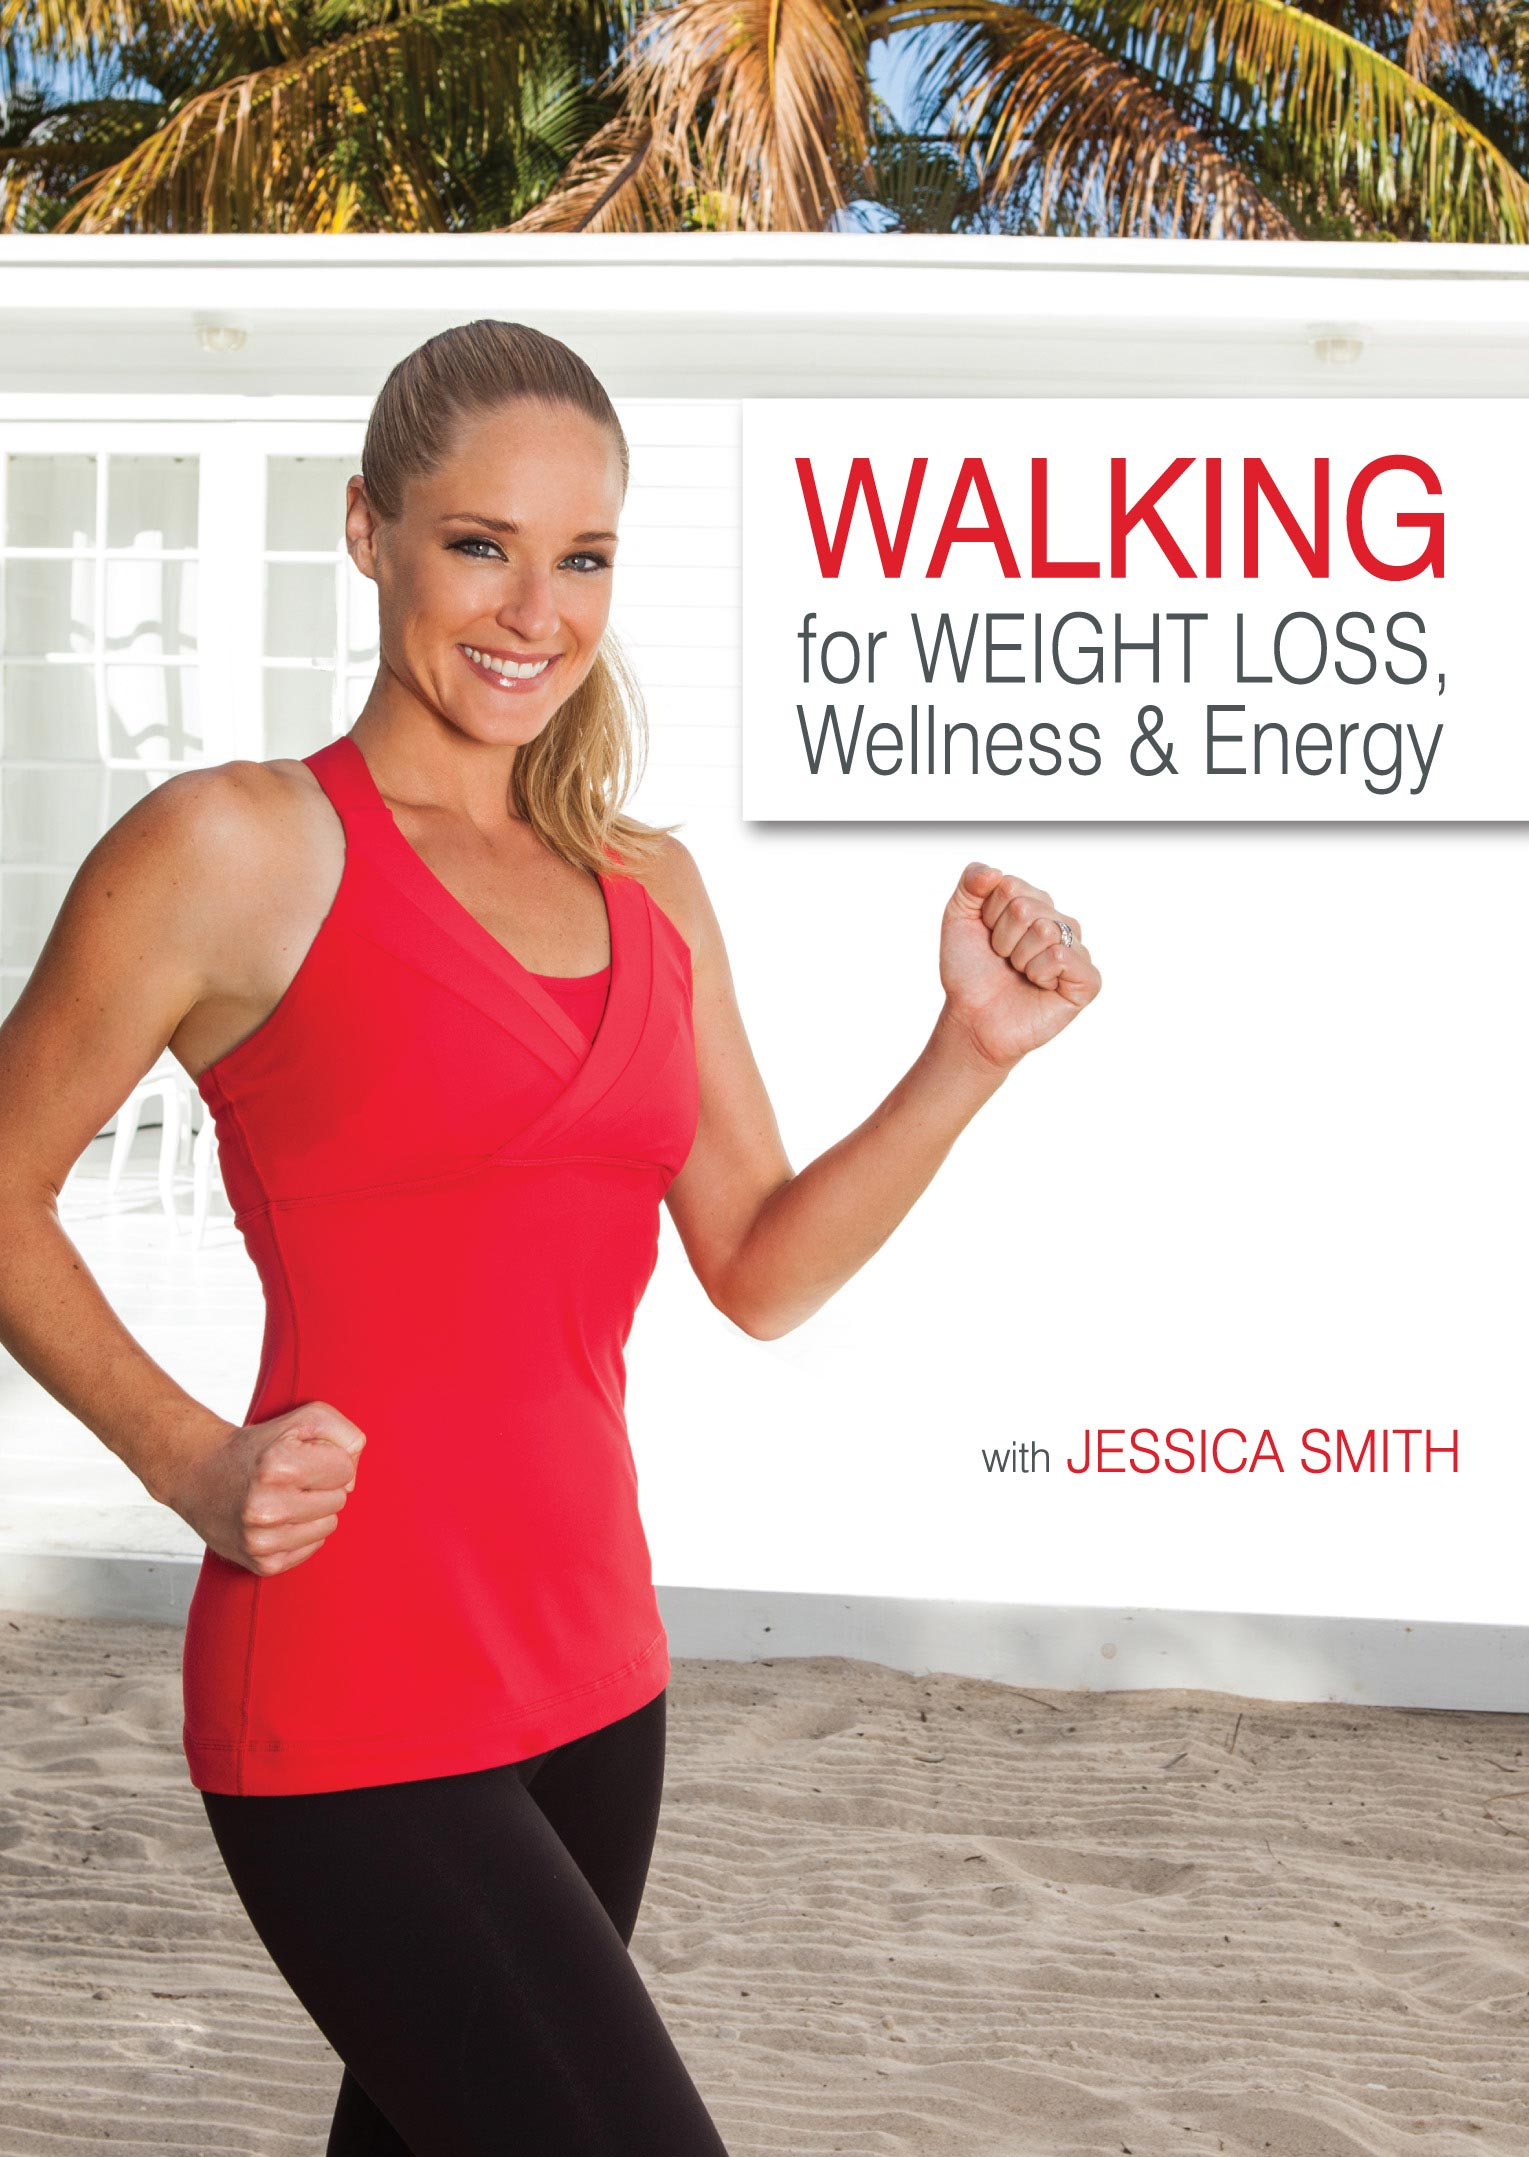 Jessica Smith: Walking for Weight Loss